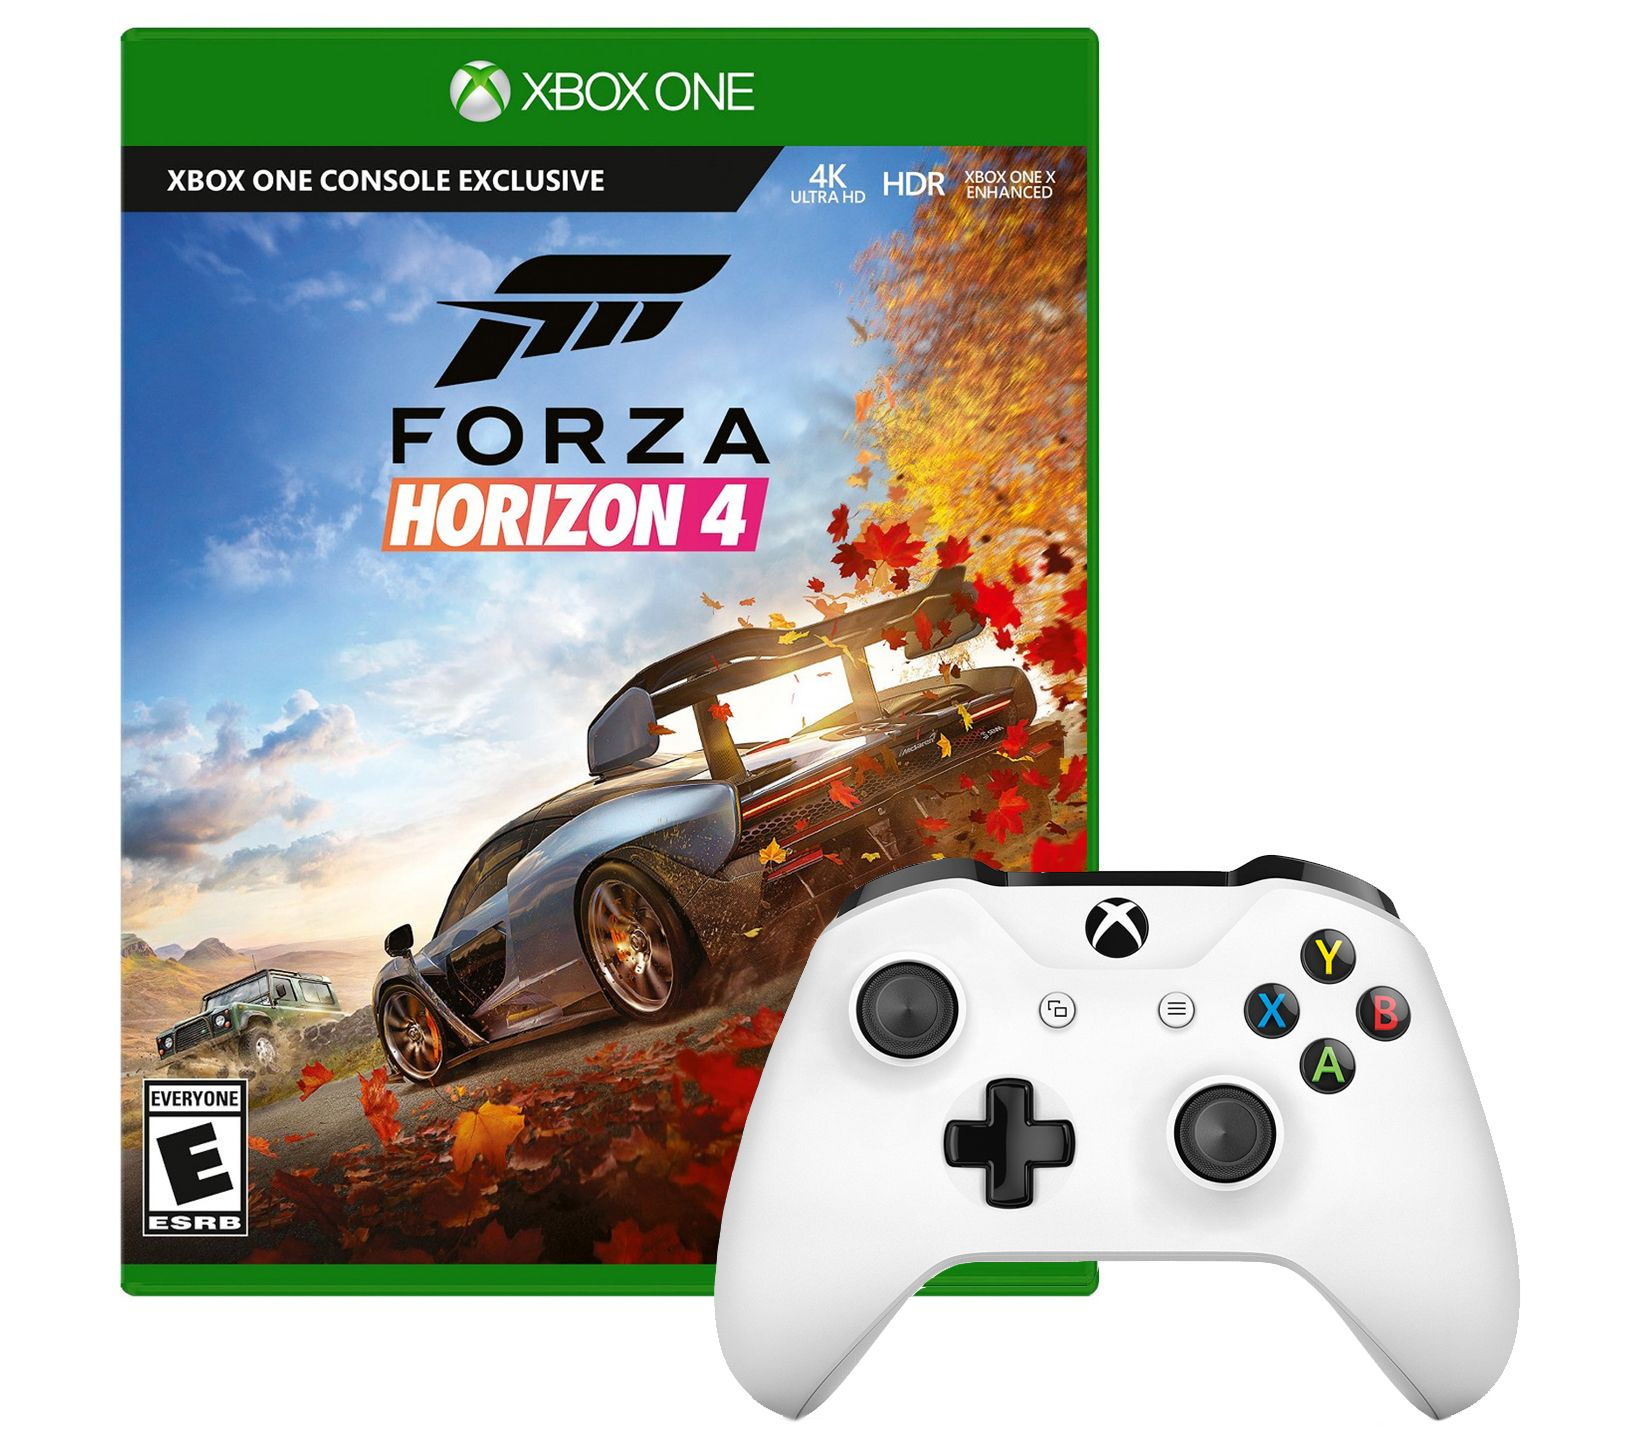 Forza Horizon 4 Game with Xbox One Controller — QVC com